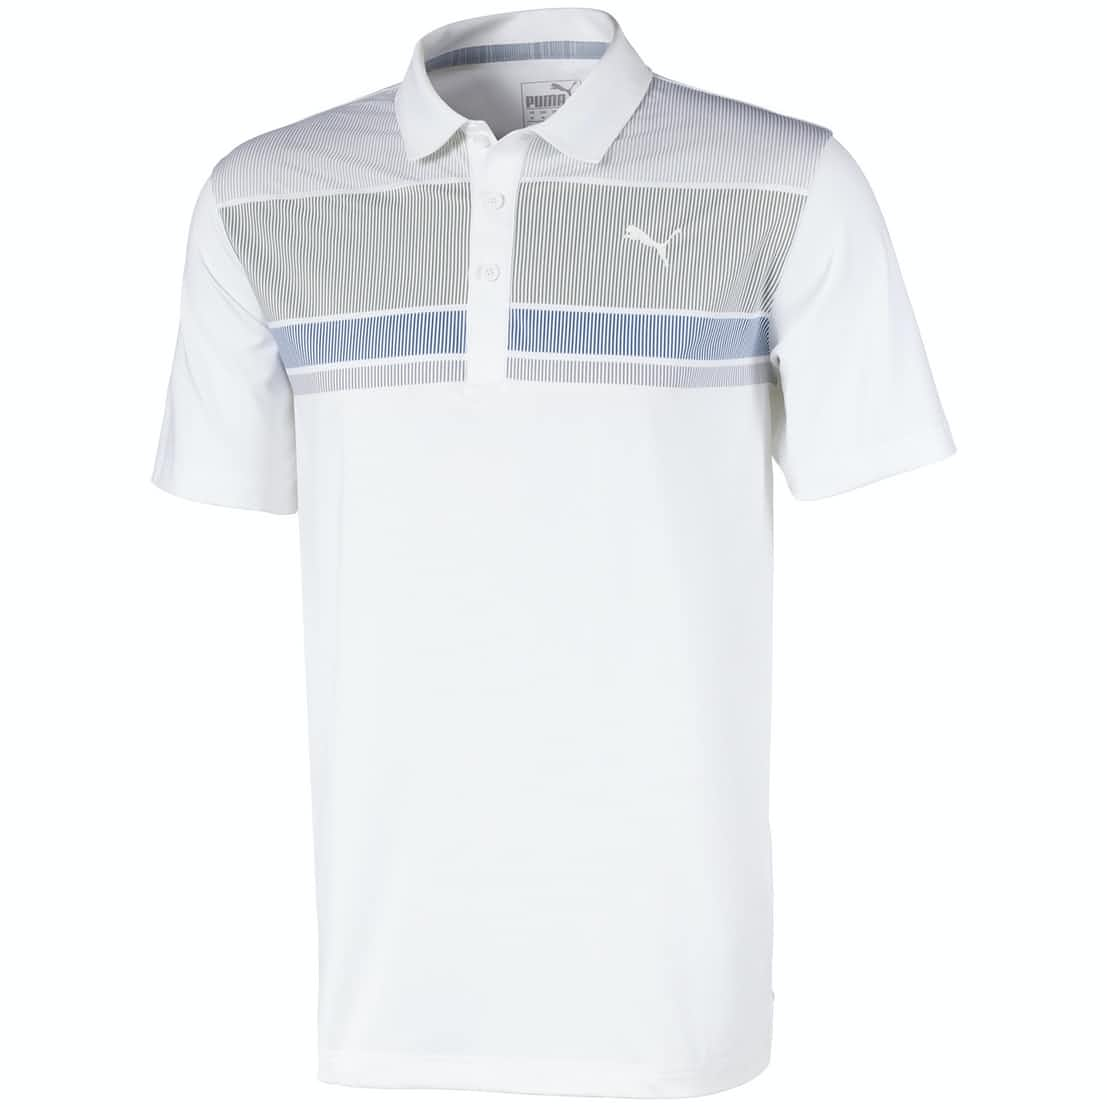 PUMA ROAD MAP GOLF POLO SHIRT PUMA MENS POLOS PUMA